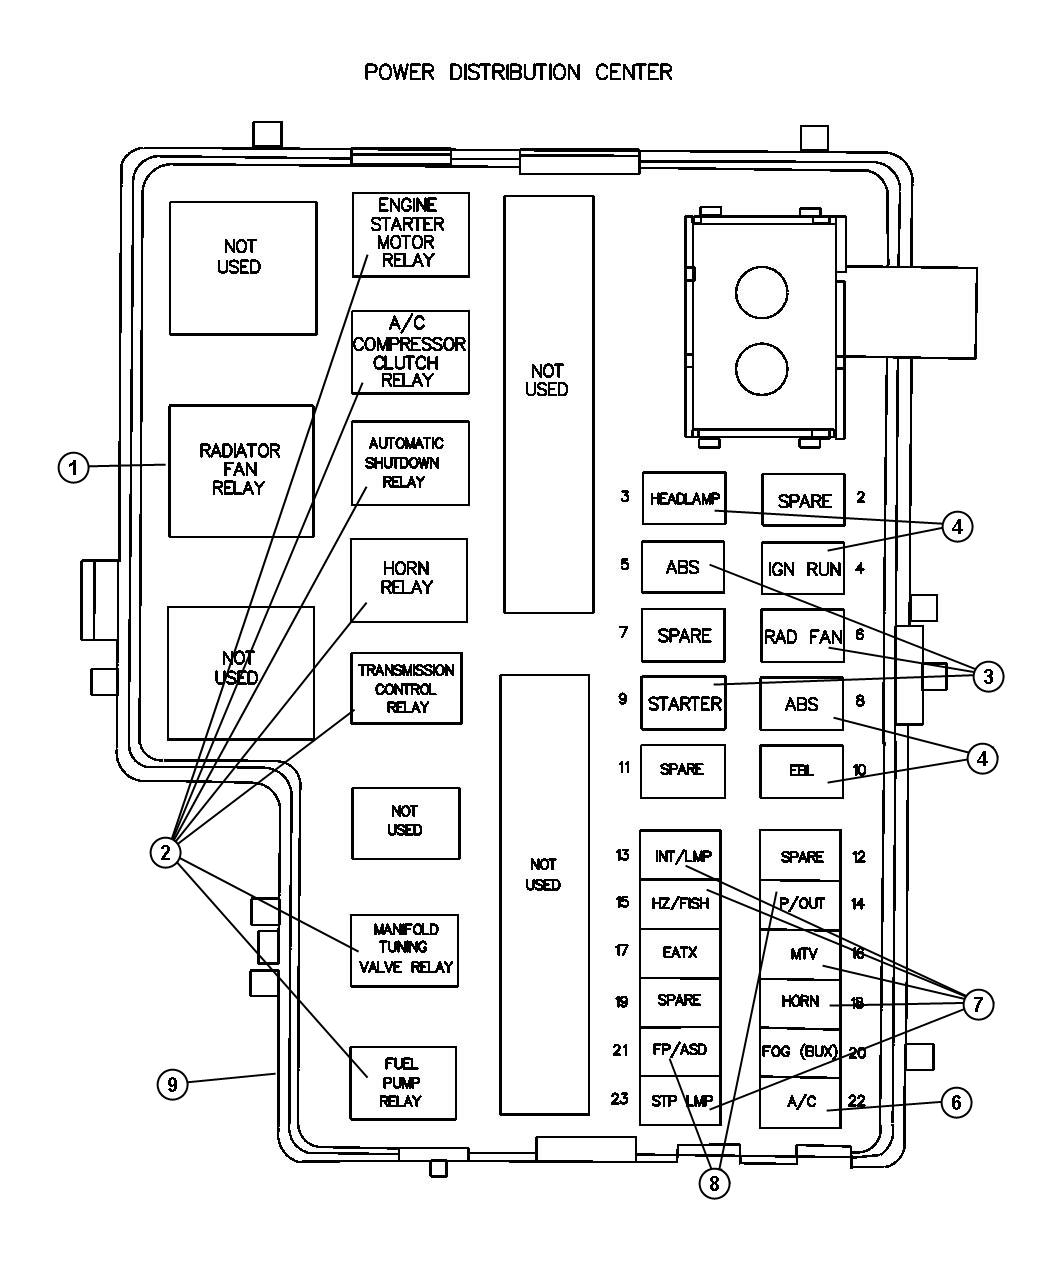 Dodge Ram 15 Interior Fuse Box Diagram